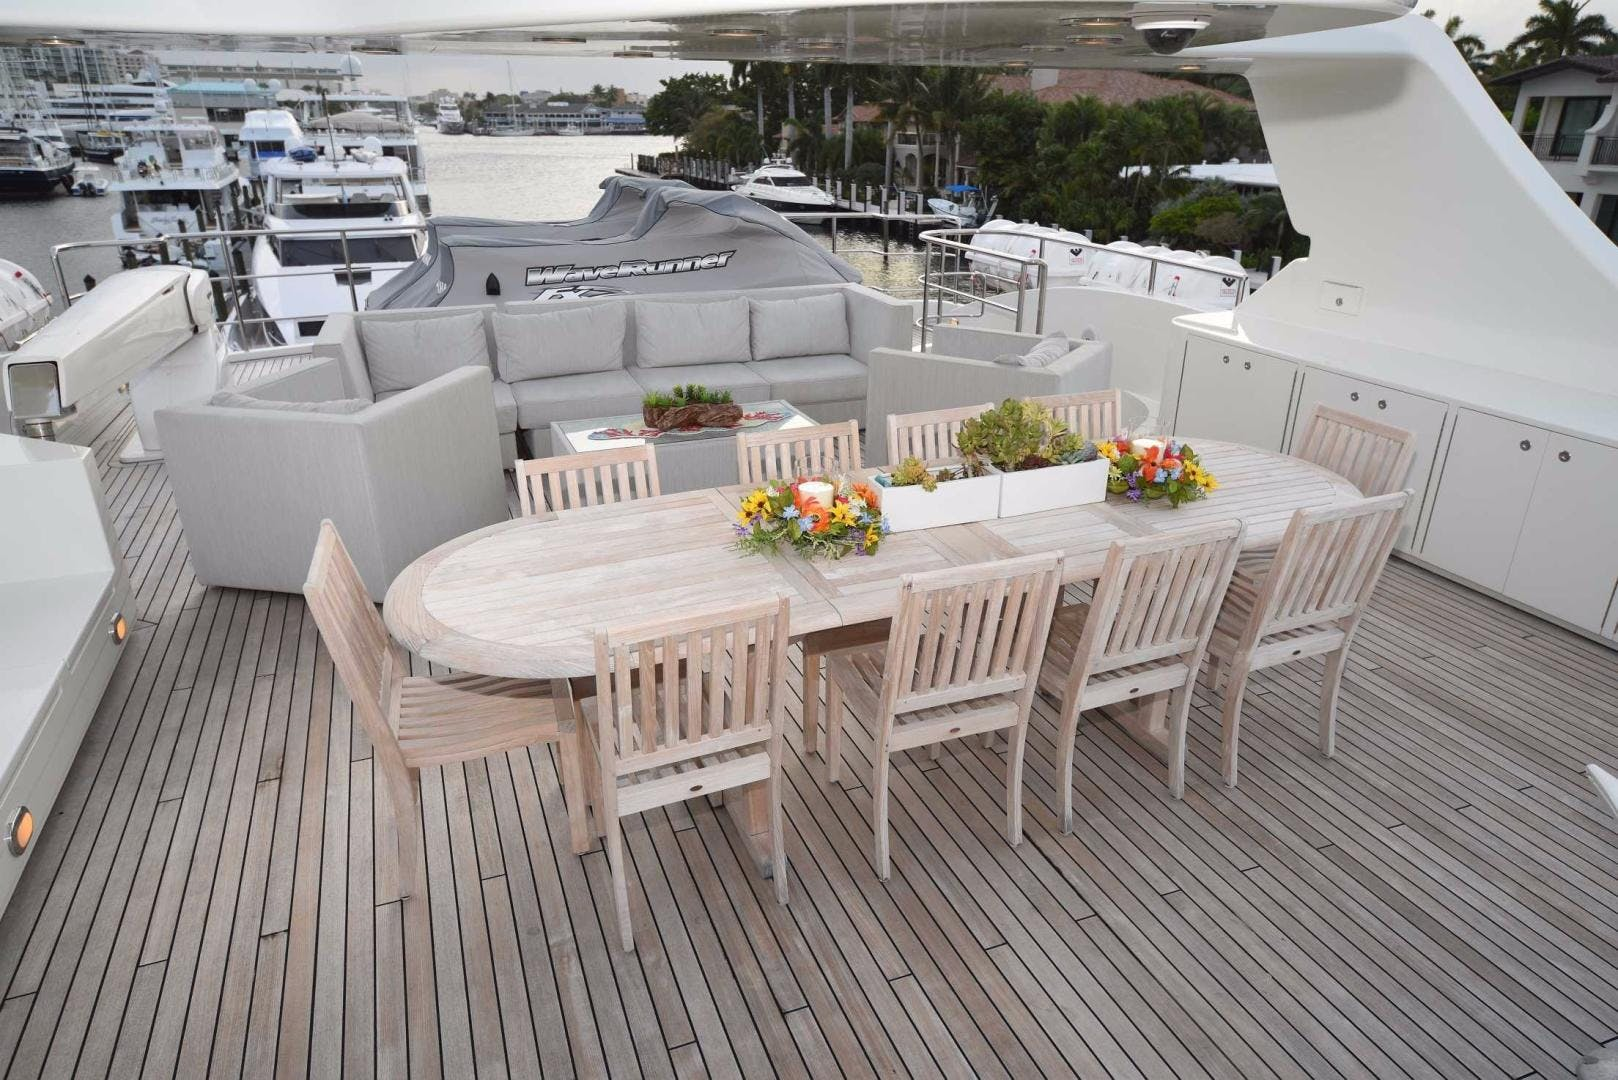 2010 IAG 127' Motor Yacht KIMBERLIE   Picture 4 of 53